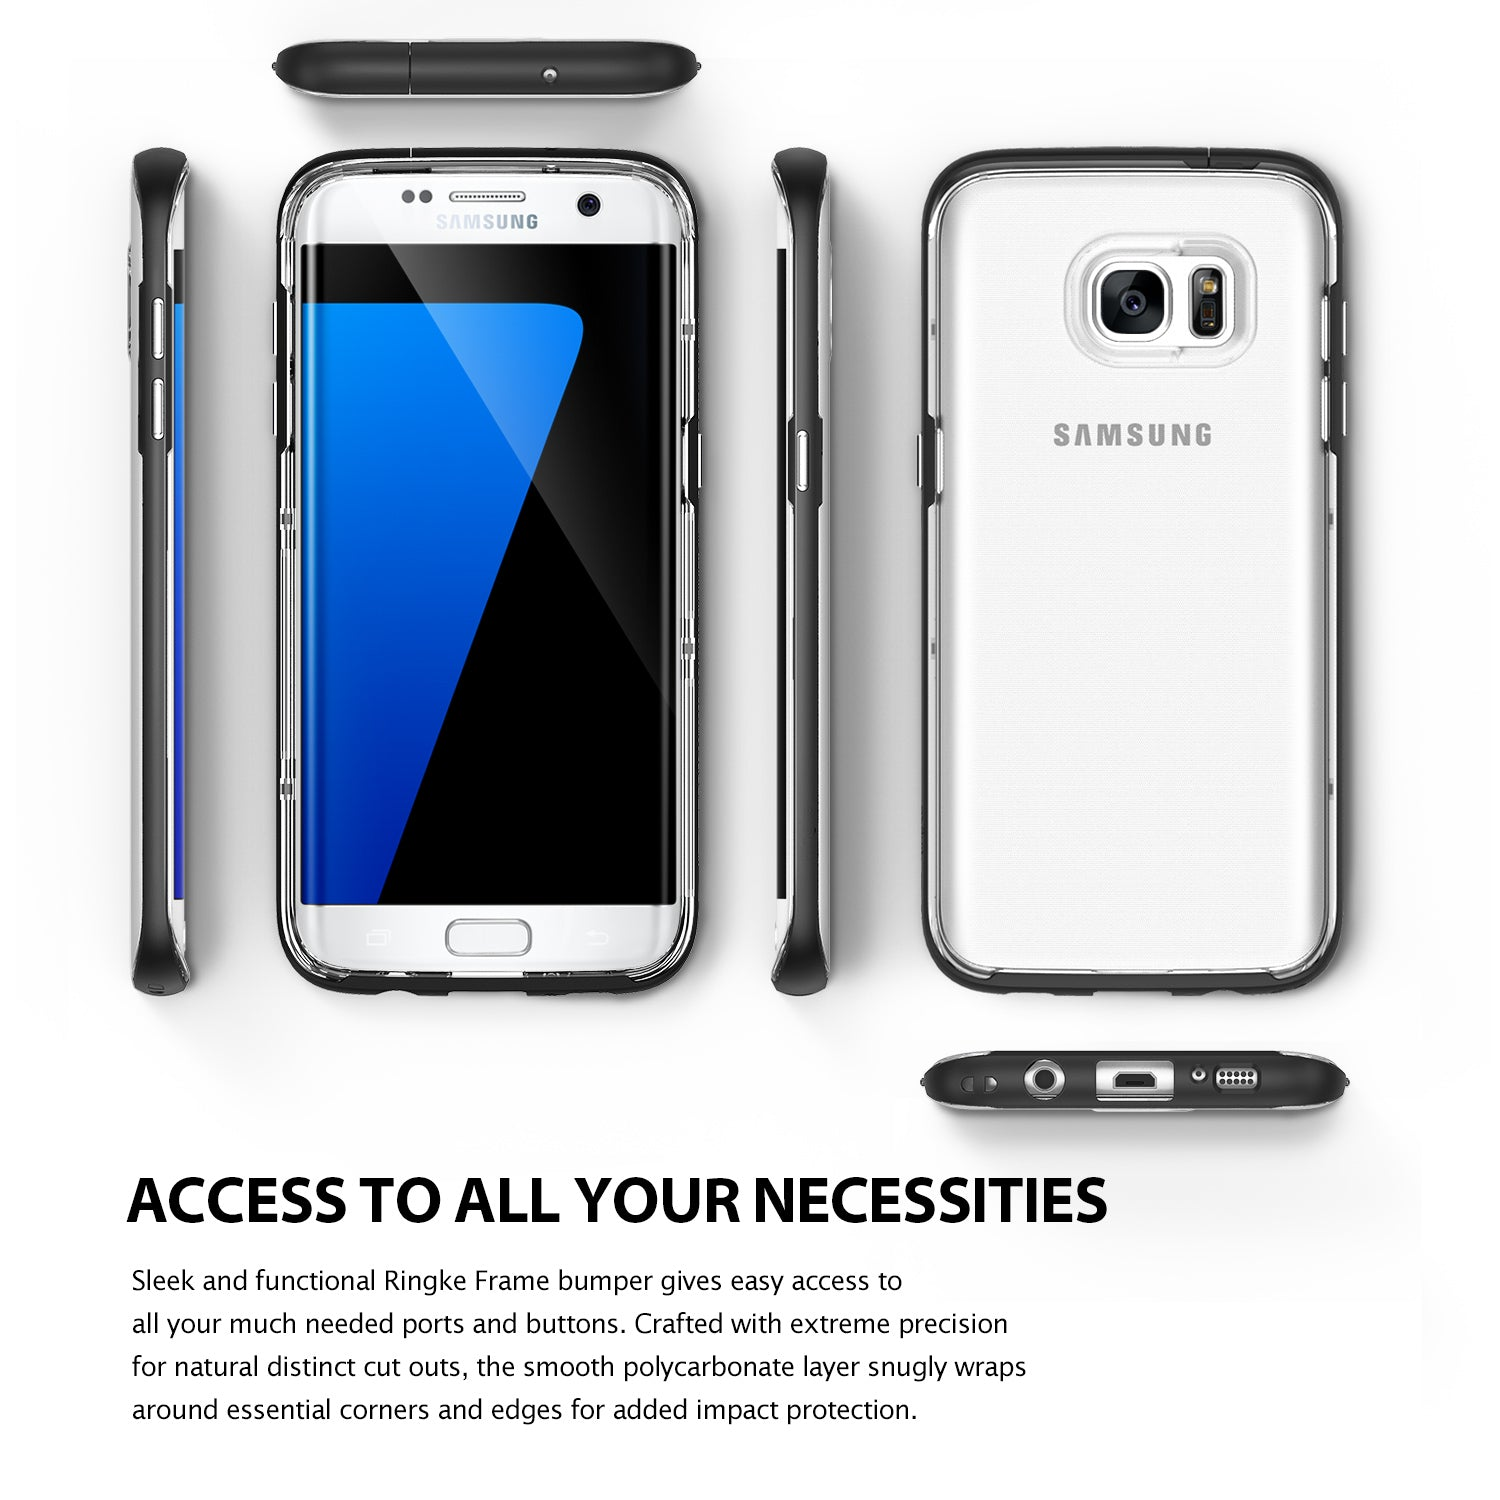 ringke frame clear back advanced bumper protection cover case for galaxy s7 edge